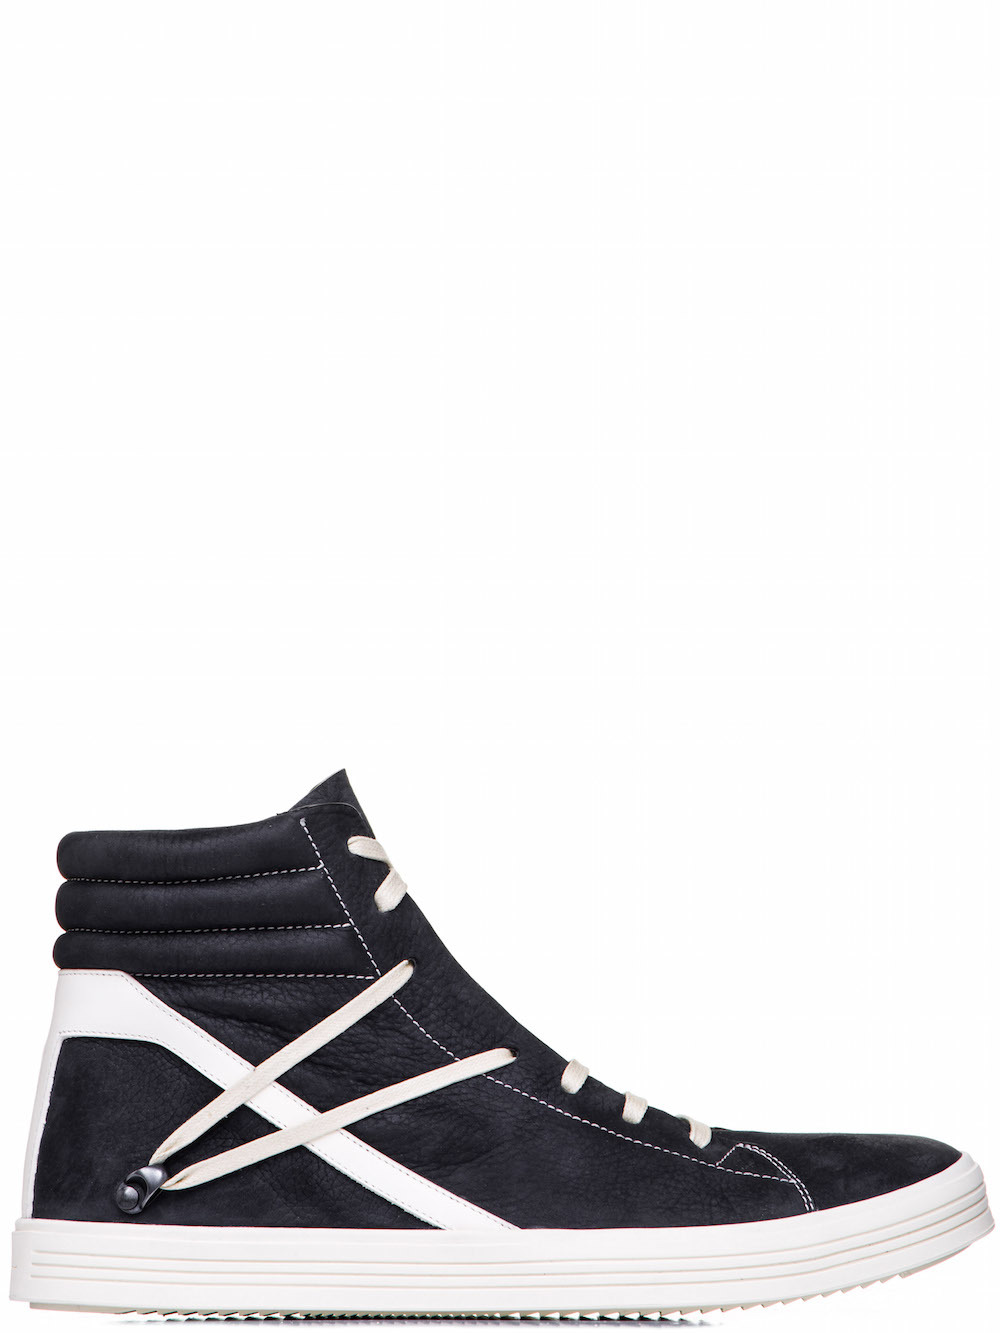 RICK OWENS GEOTHRASHER HIGH SNEAKERS IN BLACK